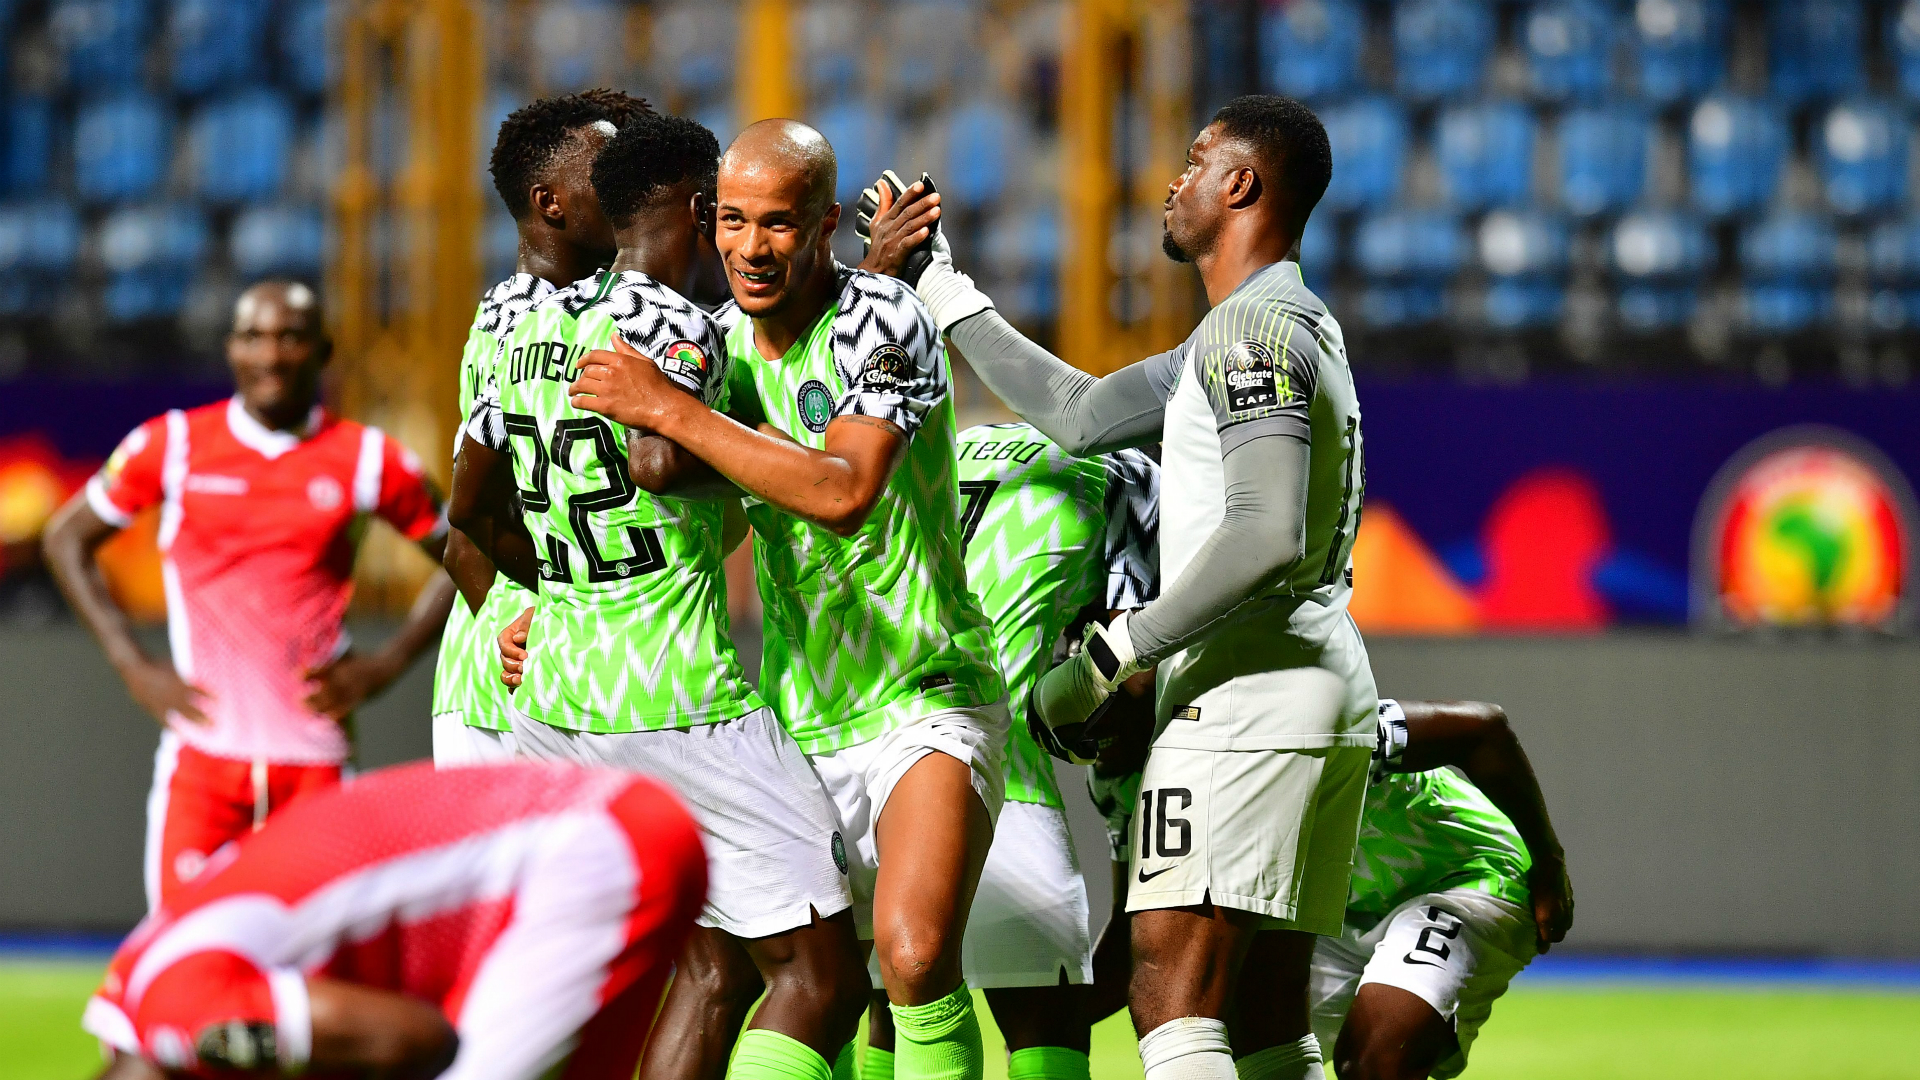 Benin Republic's Dussuyer backs Nigeria to qualify for 2022 World Cup